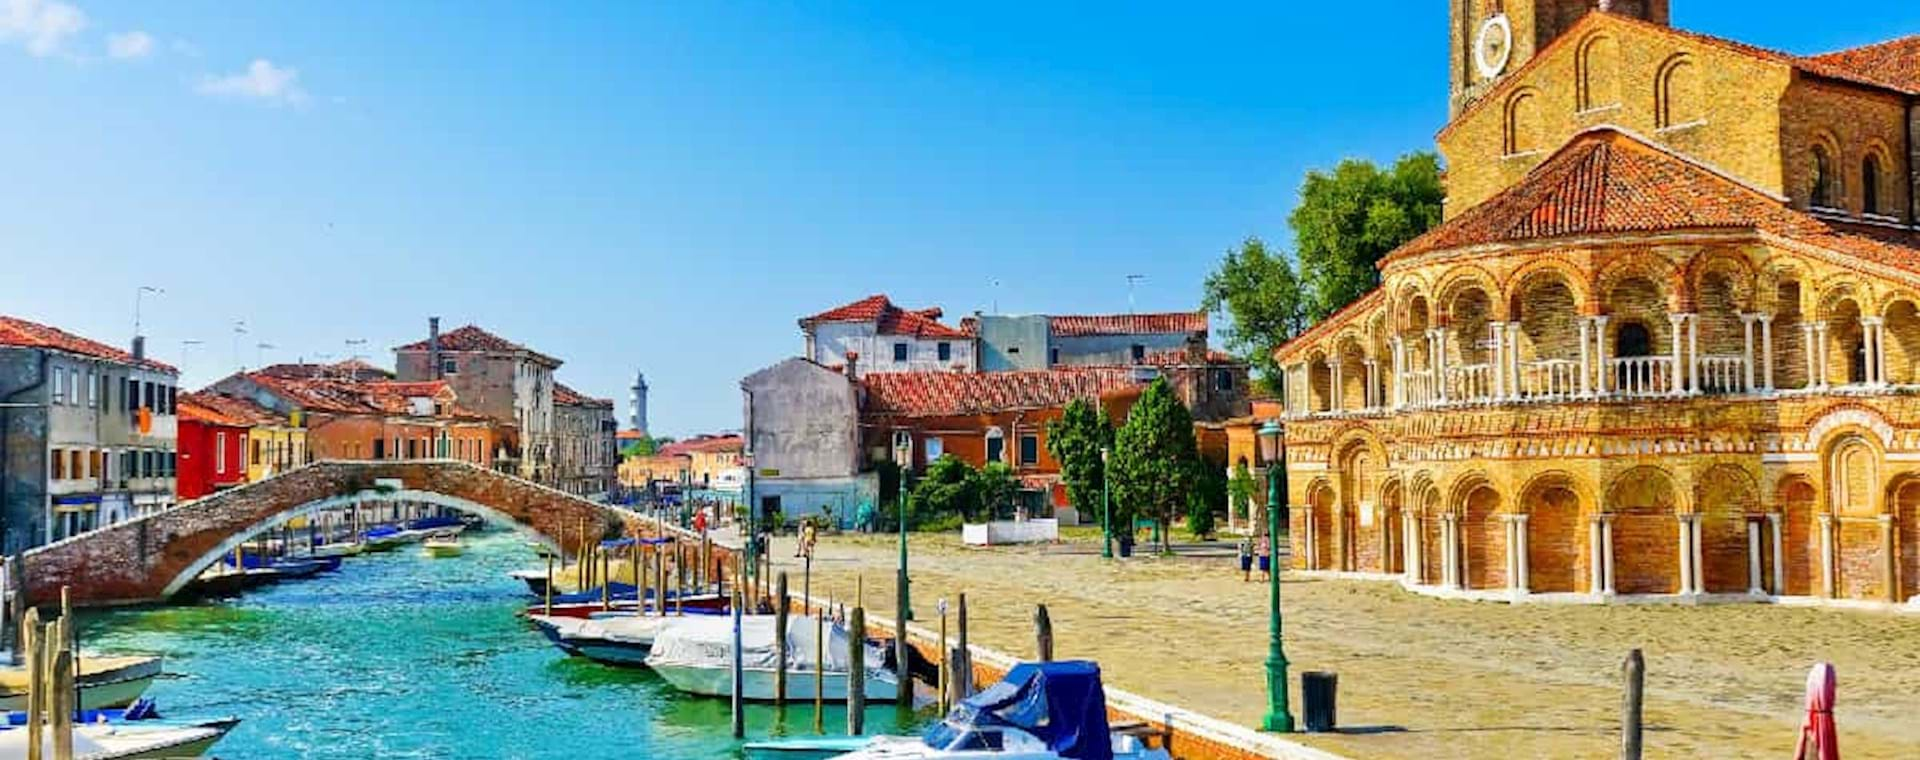 Stunning view of the canal in Murano